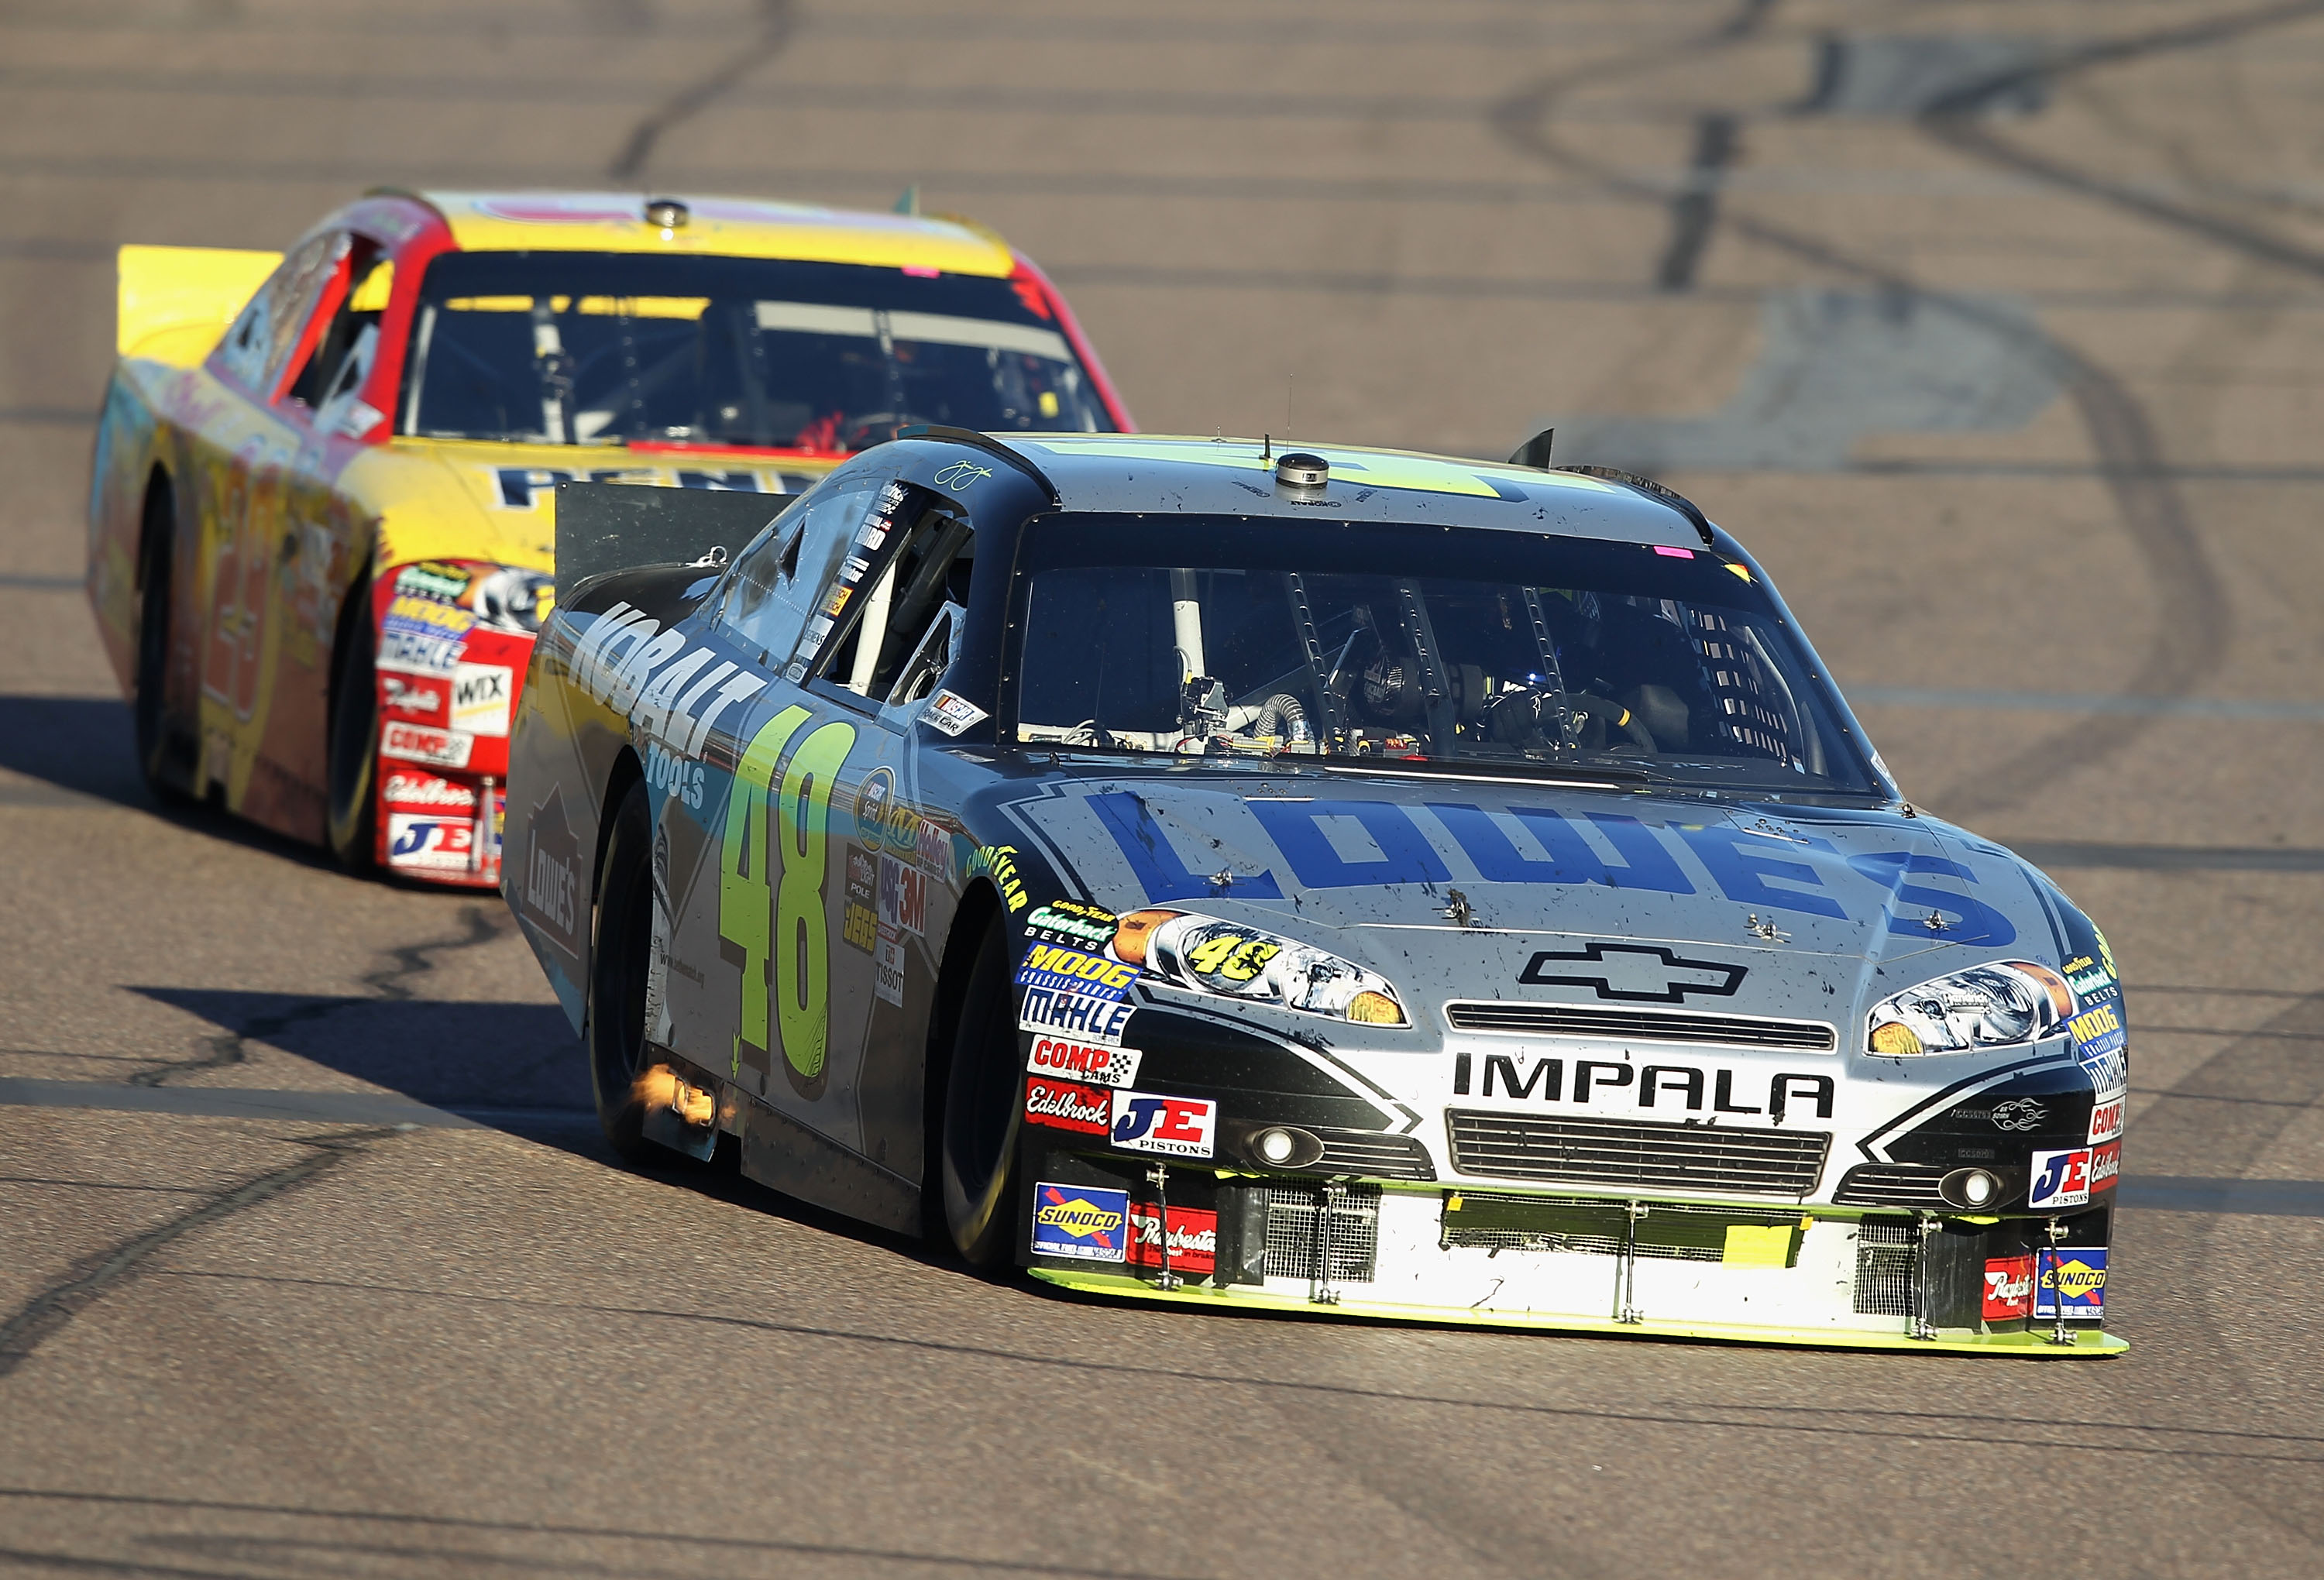 NASCAR Sprint Cup: The 10 Biggest Technological Innovations